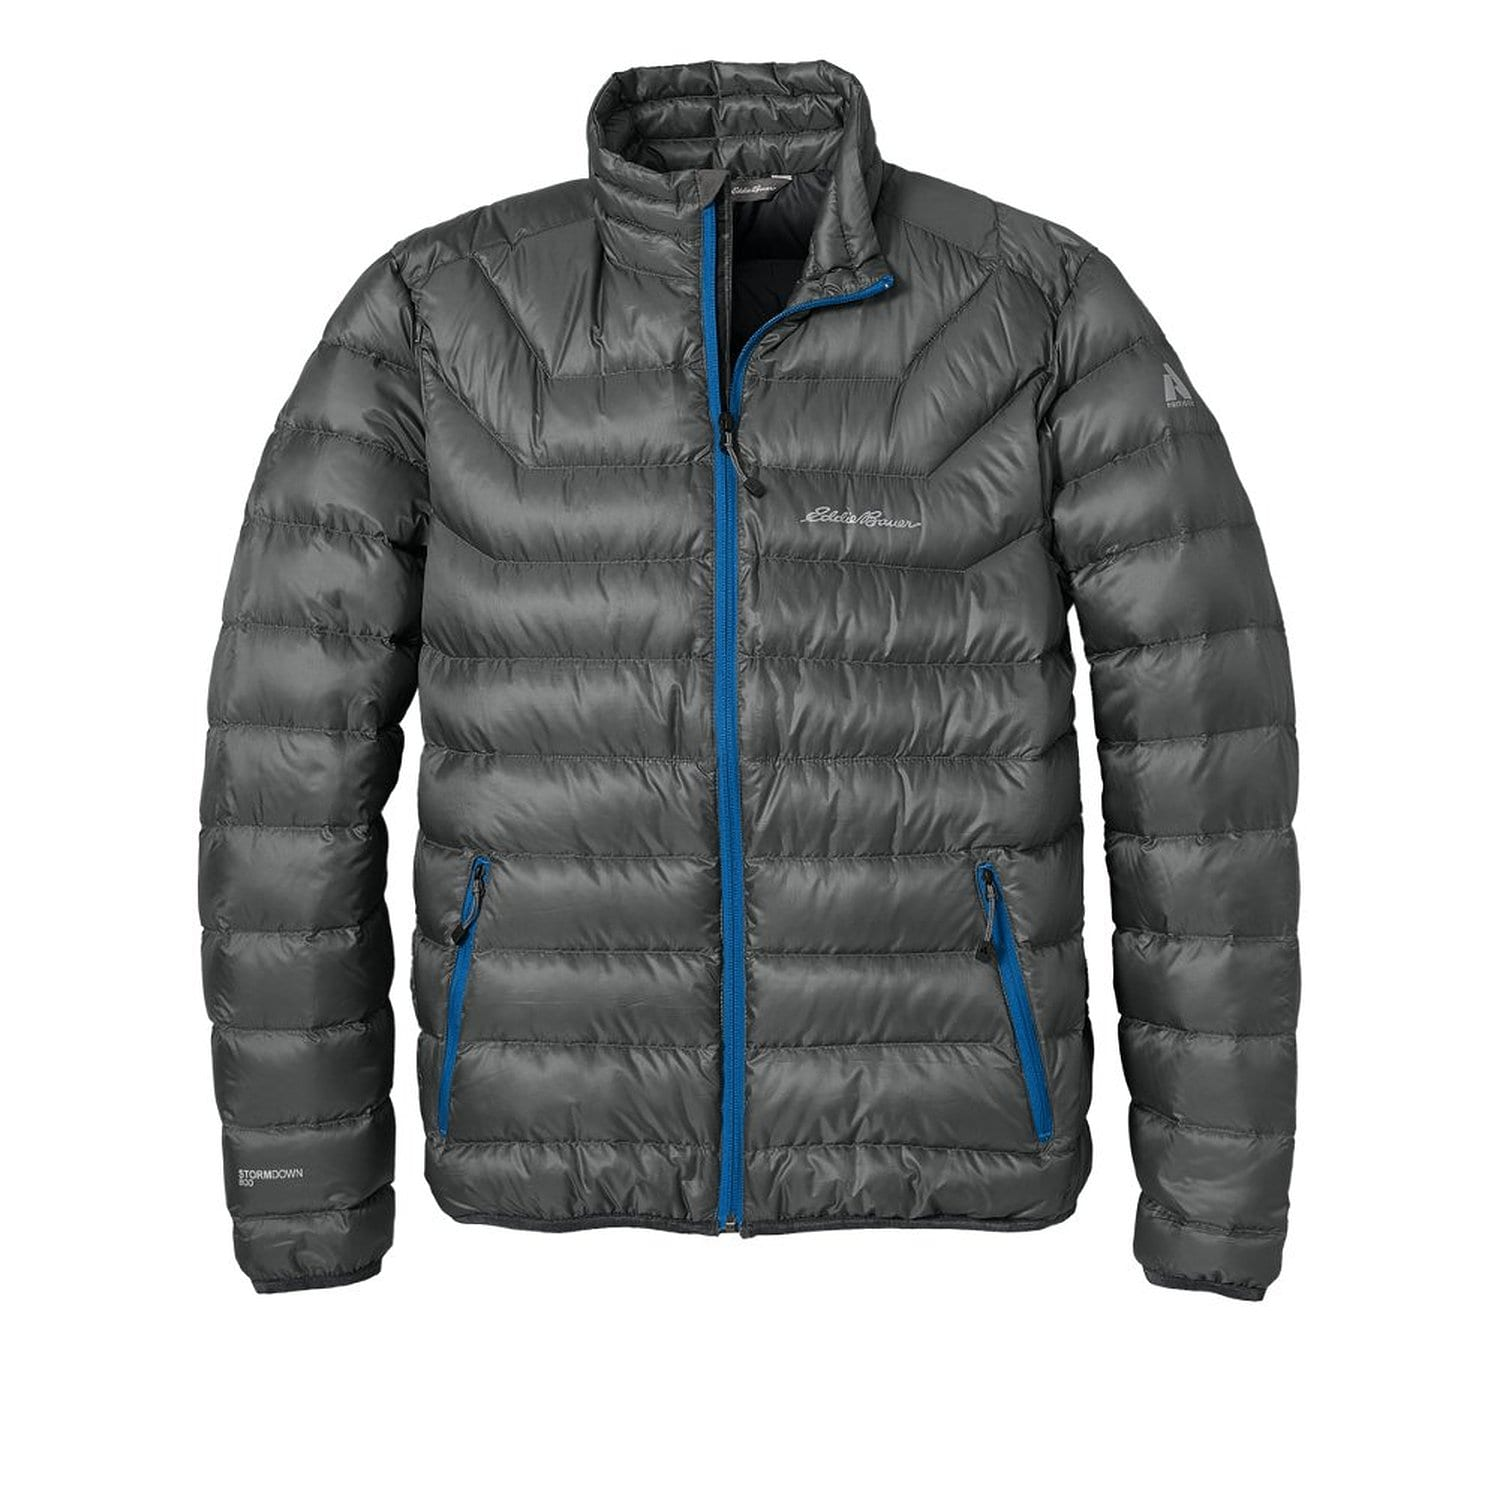 Eddie Bauer Downlight StormDown Hooded Jacket